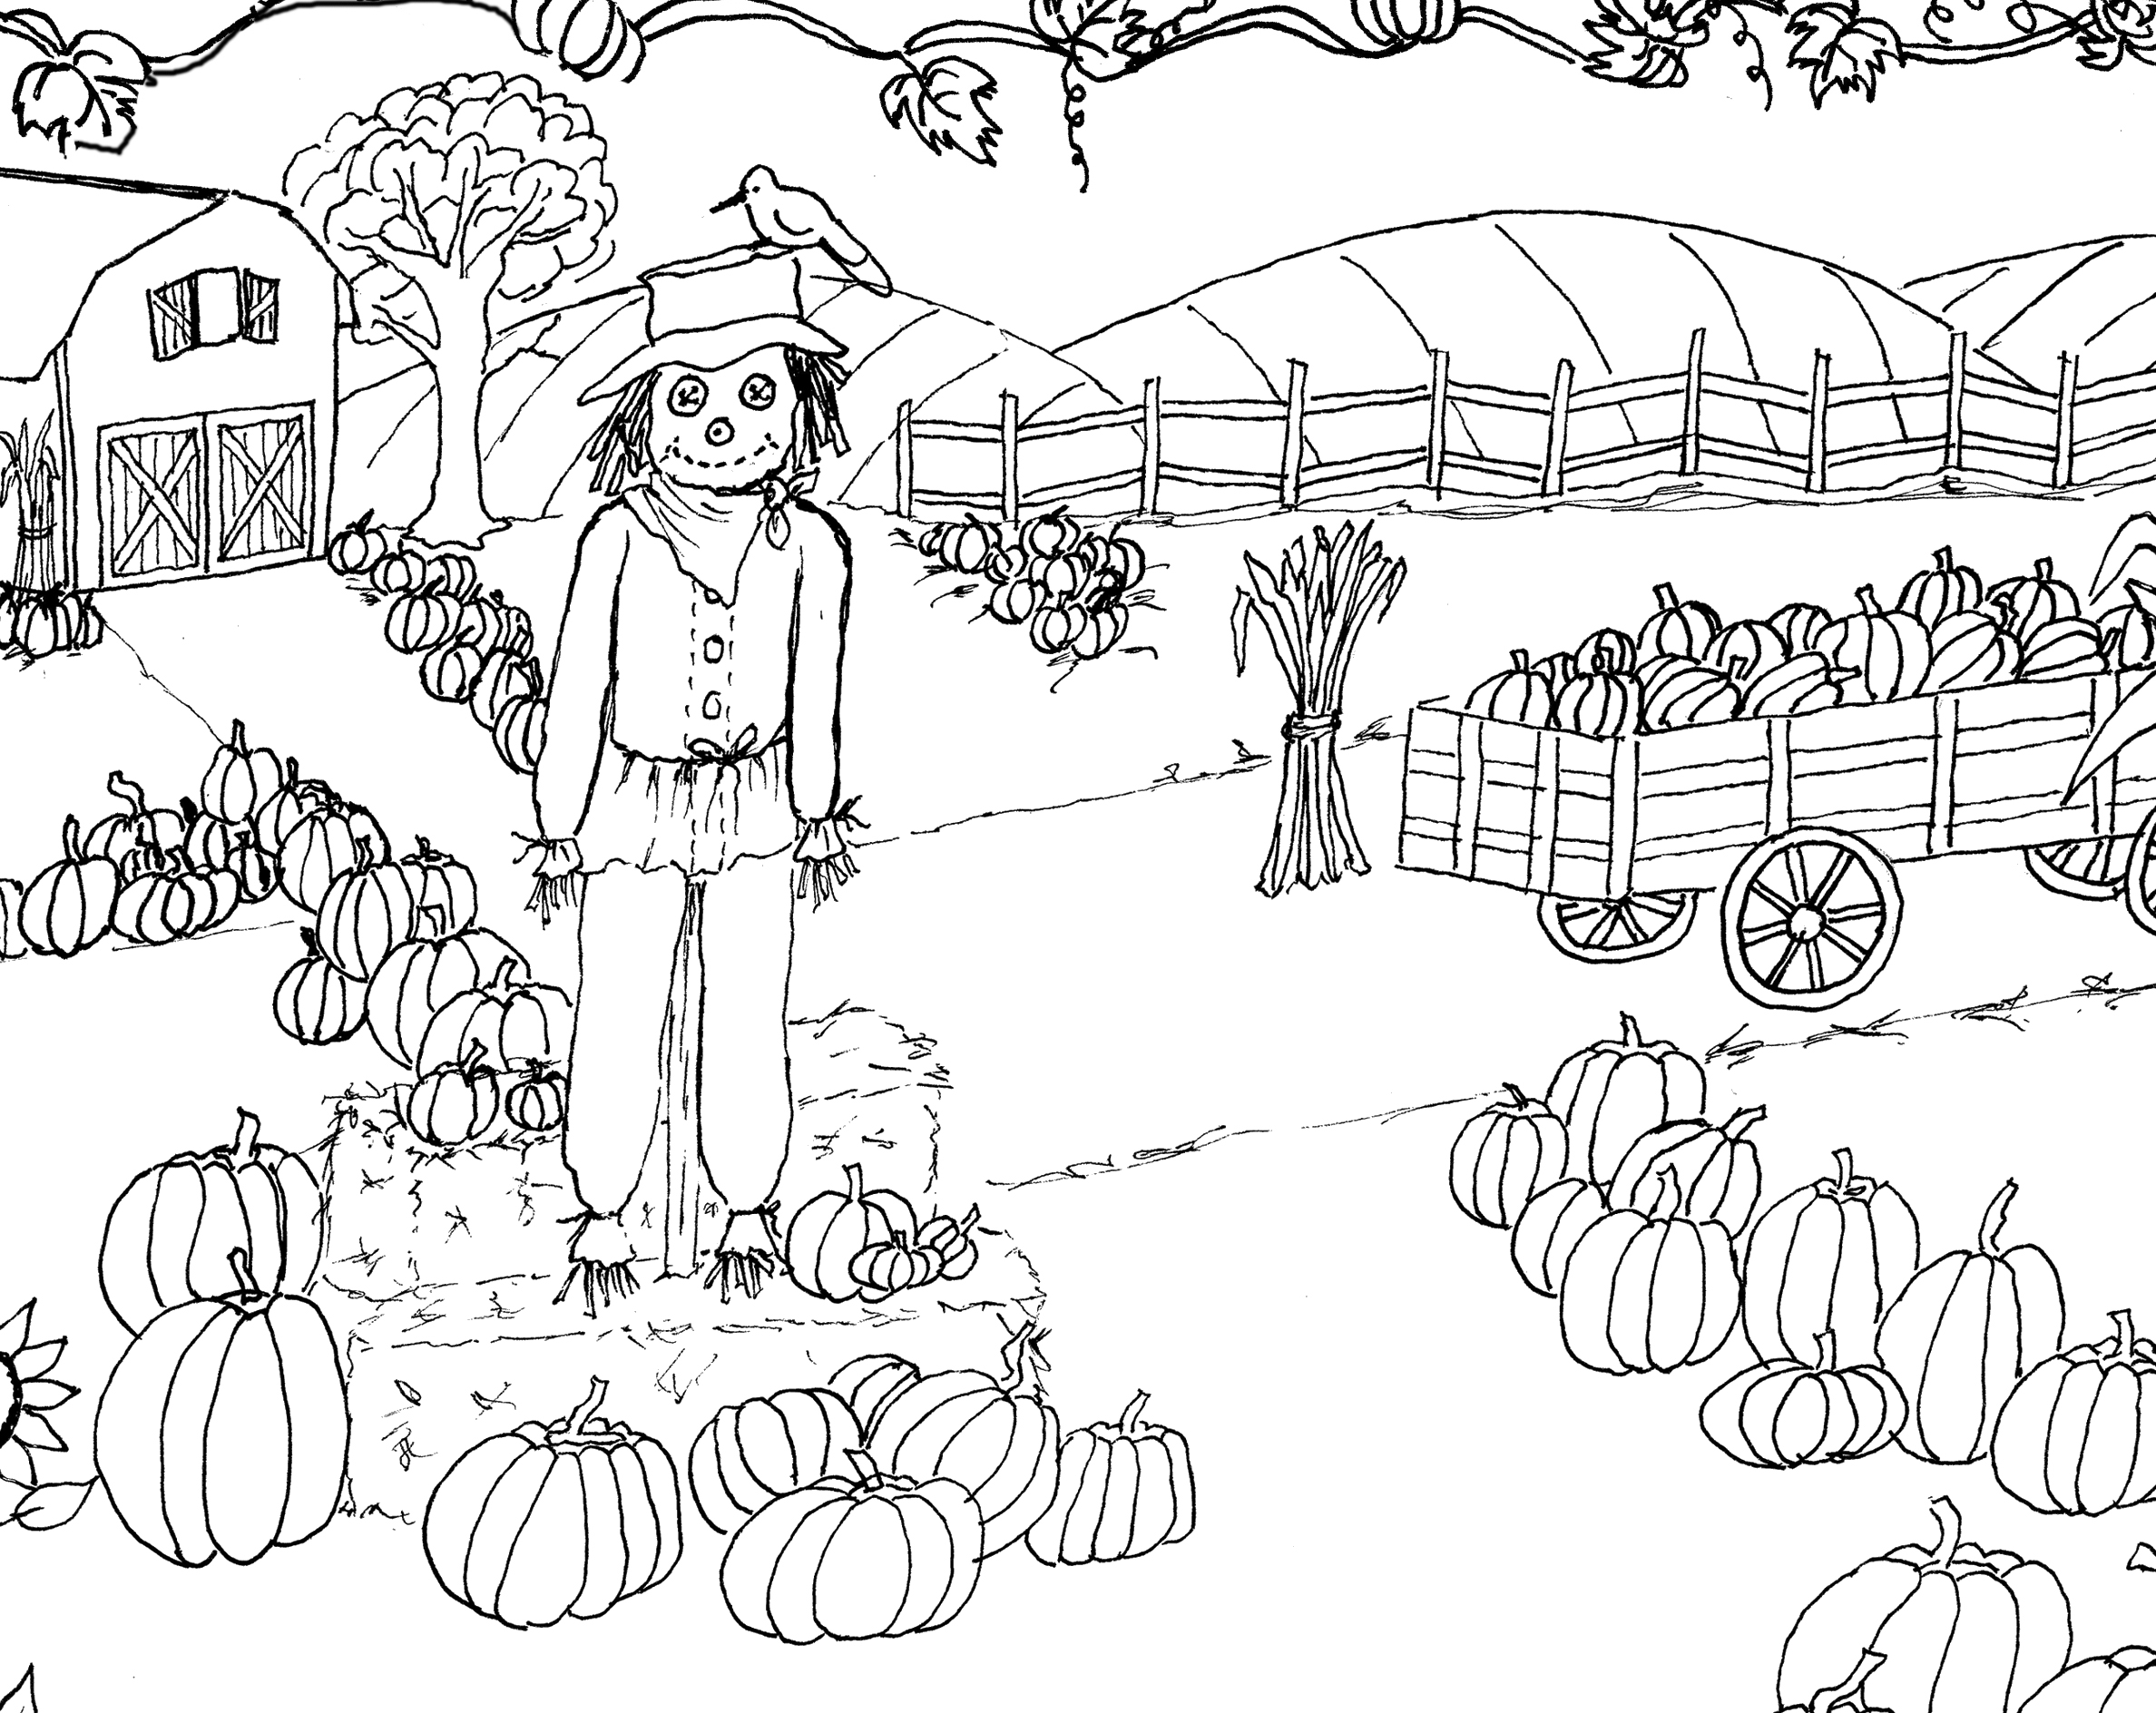 graphic coloring pages - photo#31